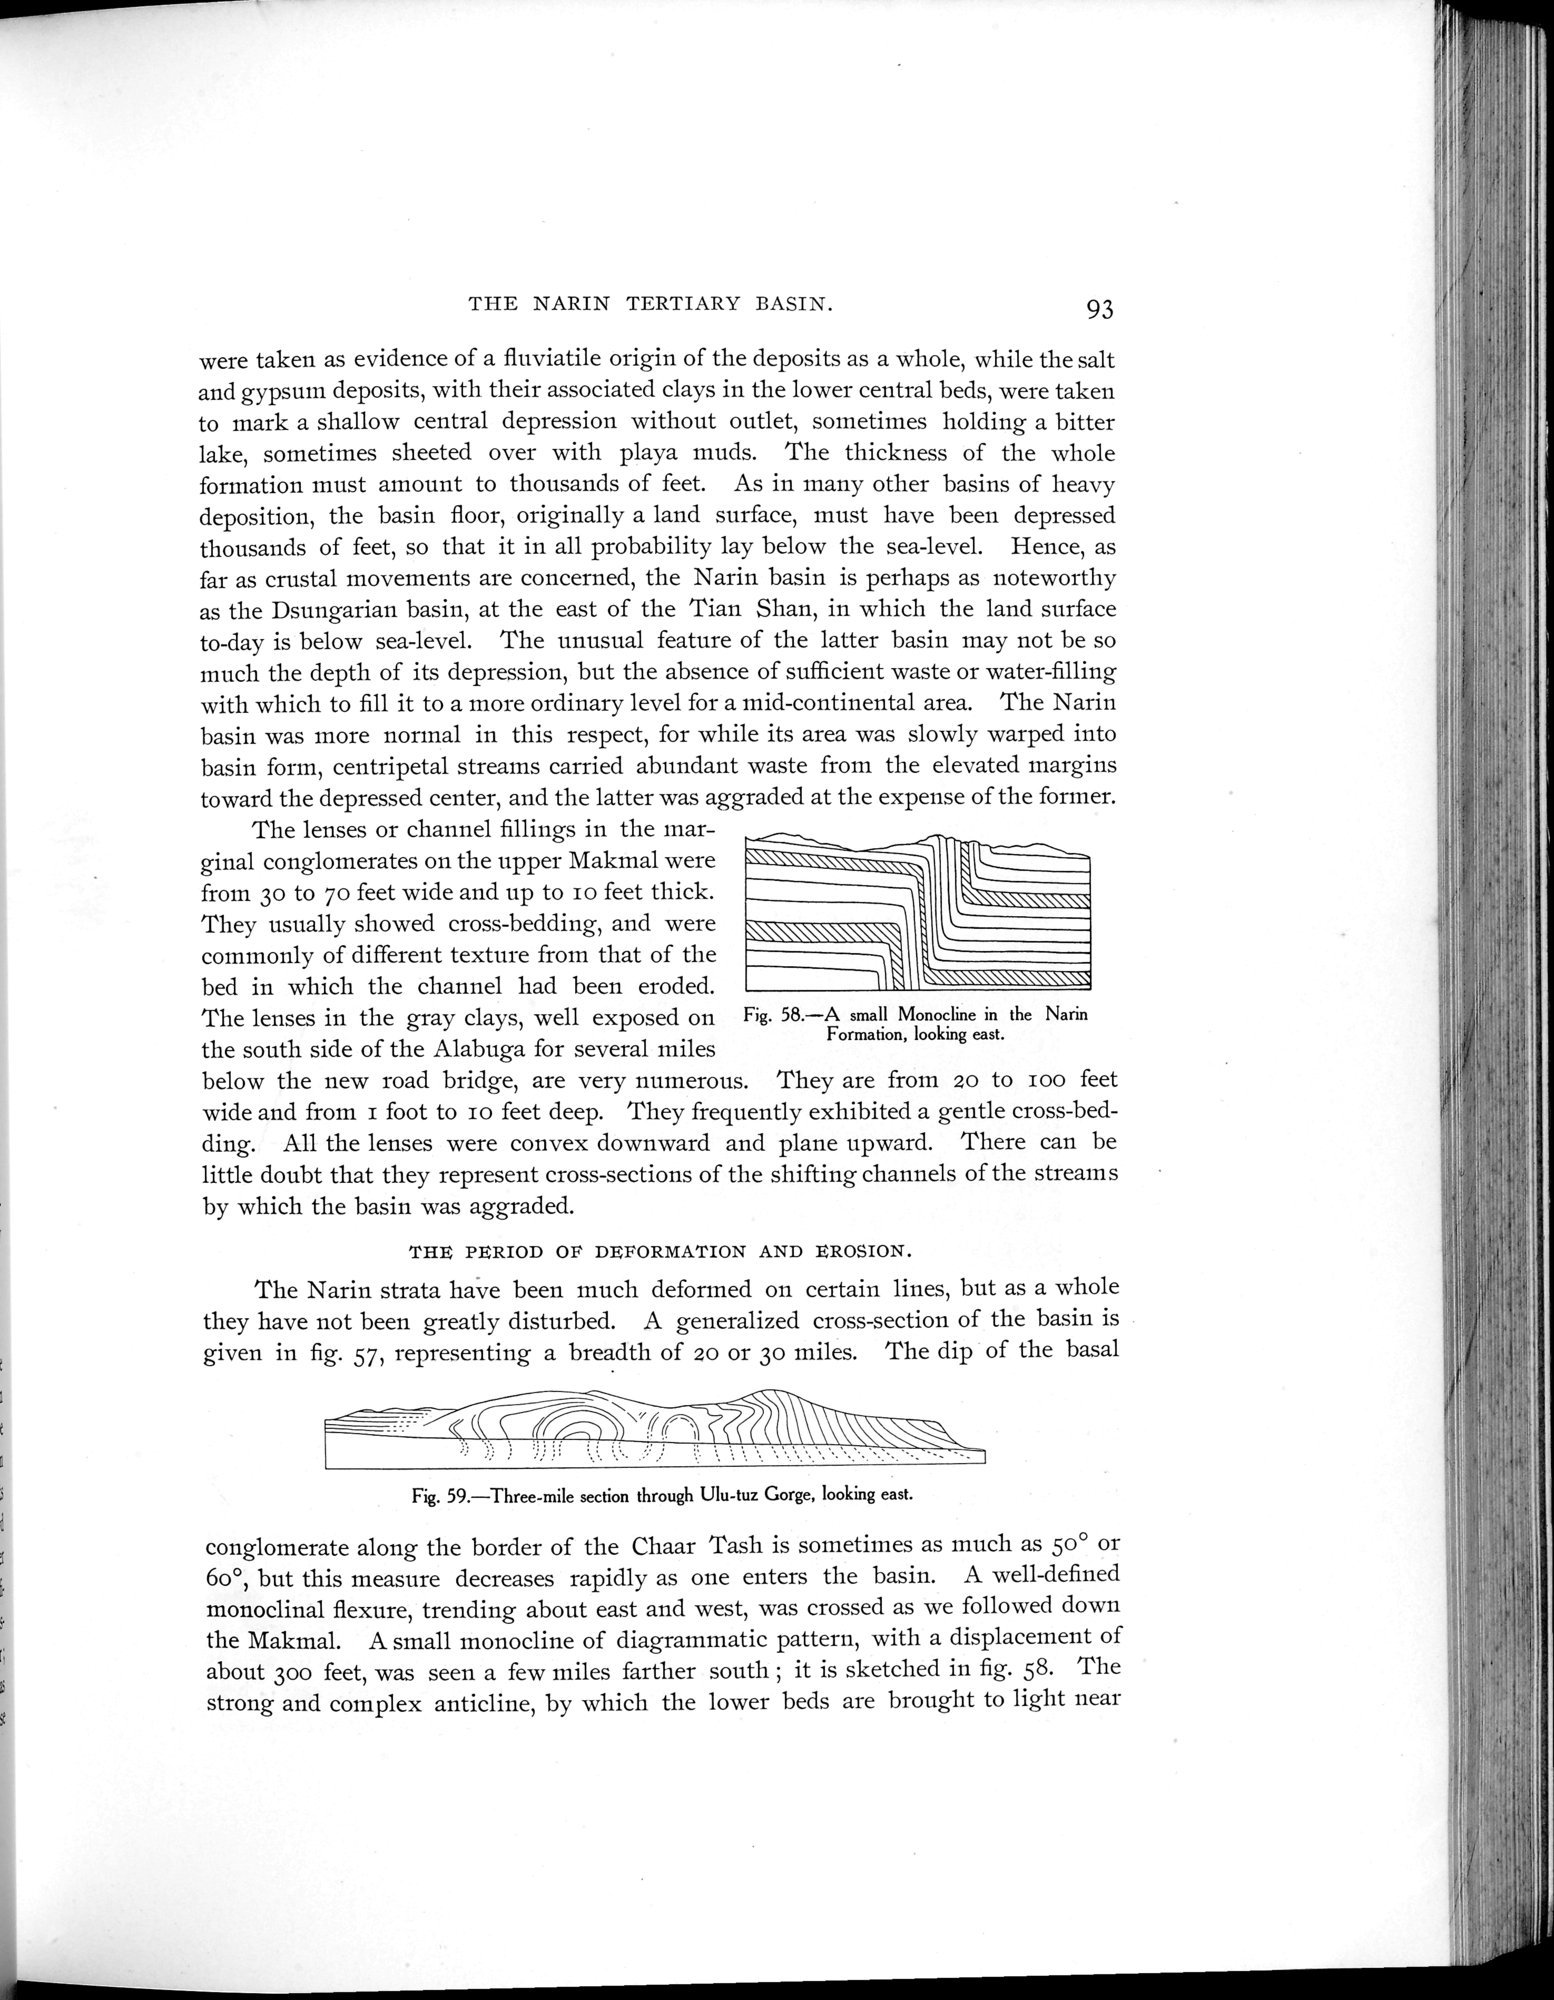 Explorations in Turkestan 1903 : vol.1 / Page 117 (Grayscale High Resolution Image)